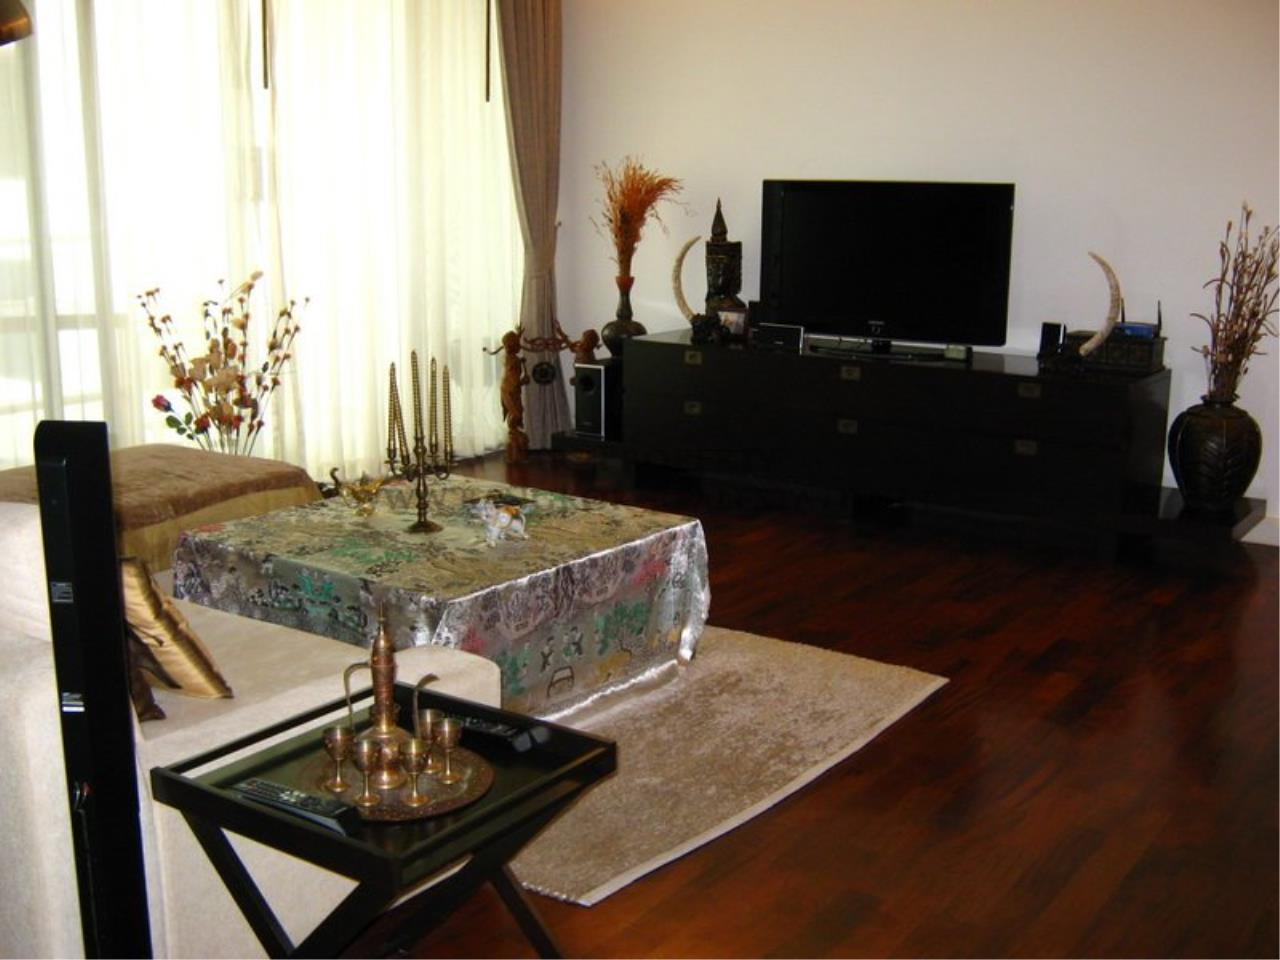 Piri Property Agency's Spacious 3 Bedroom near Asoke on Sukhumvit Soi 20 - 200 SQM 3